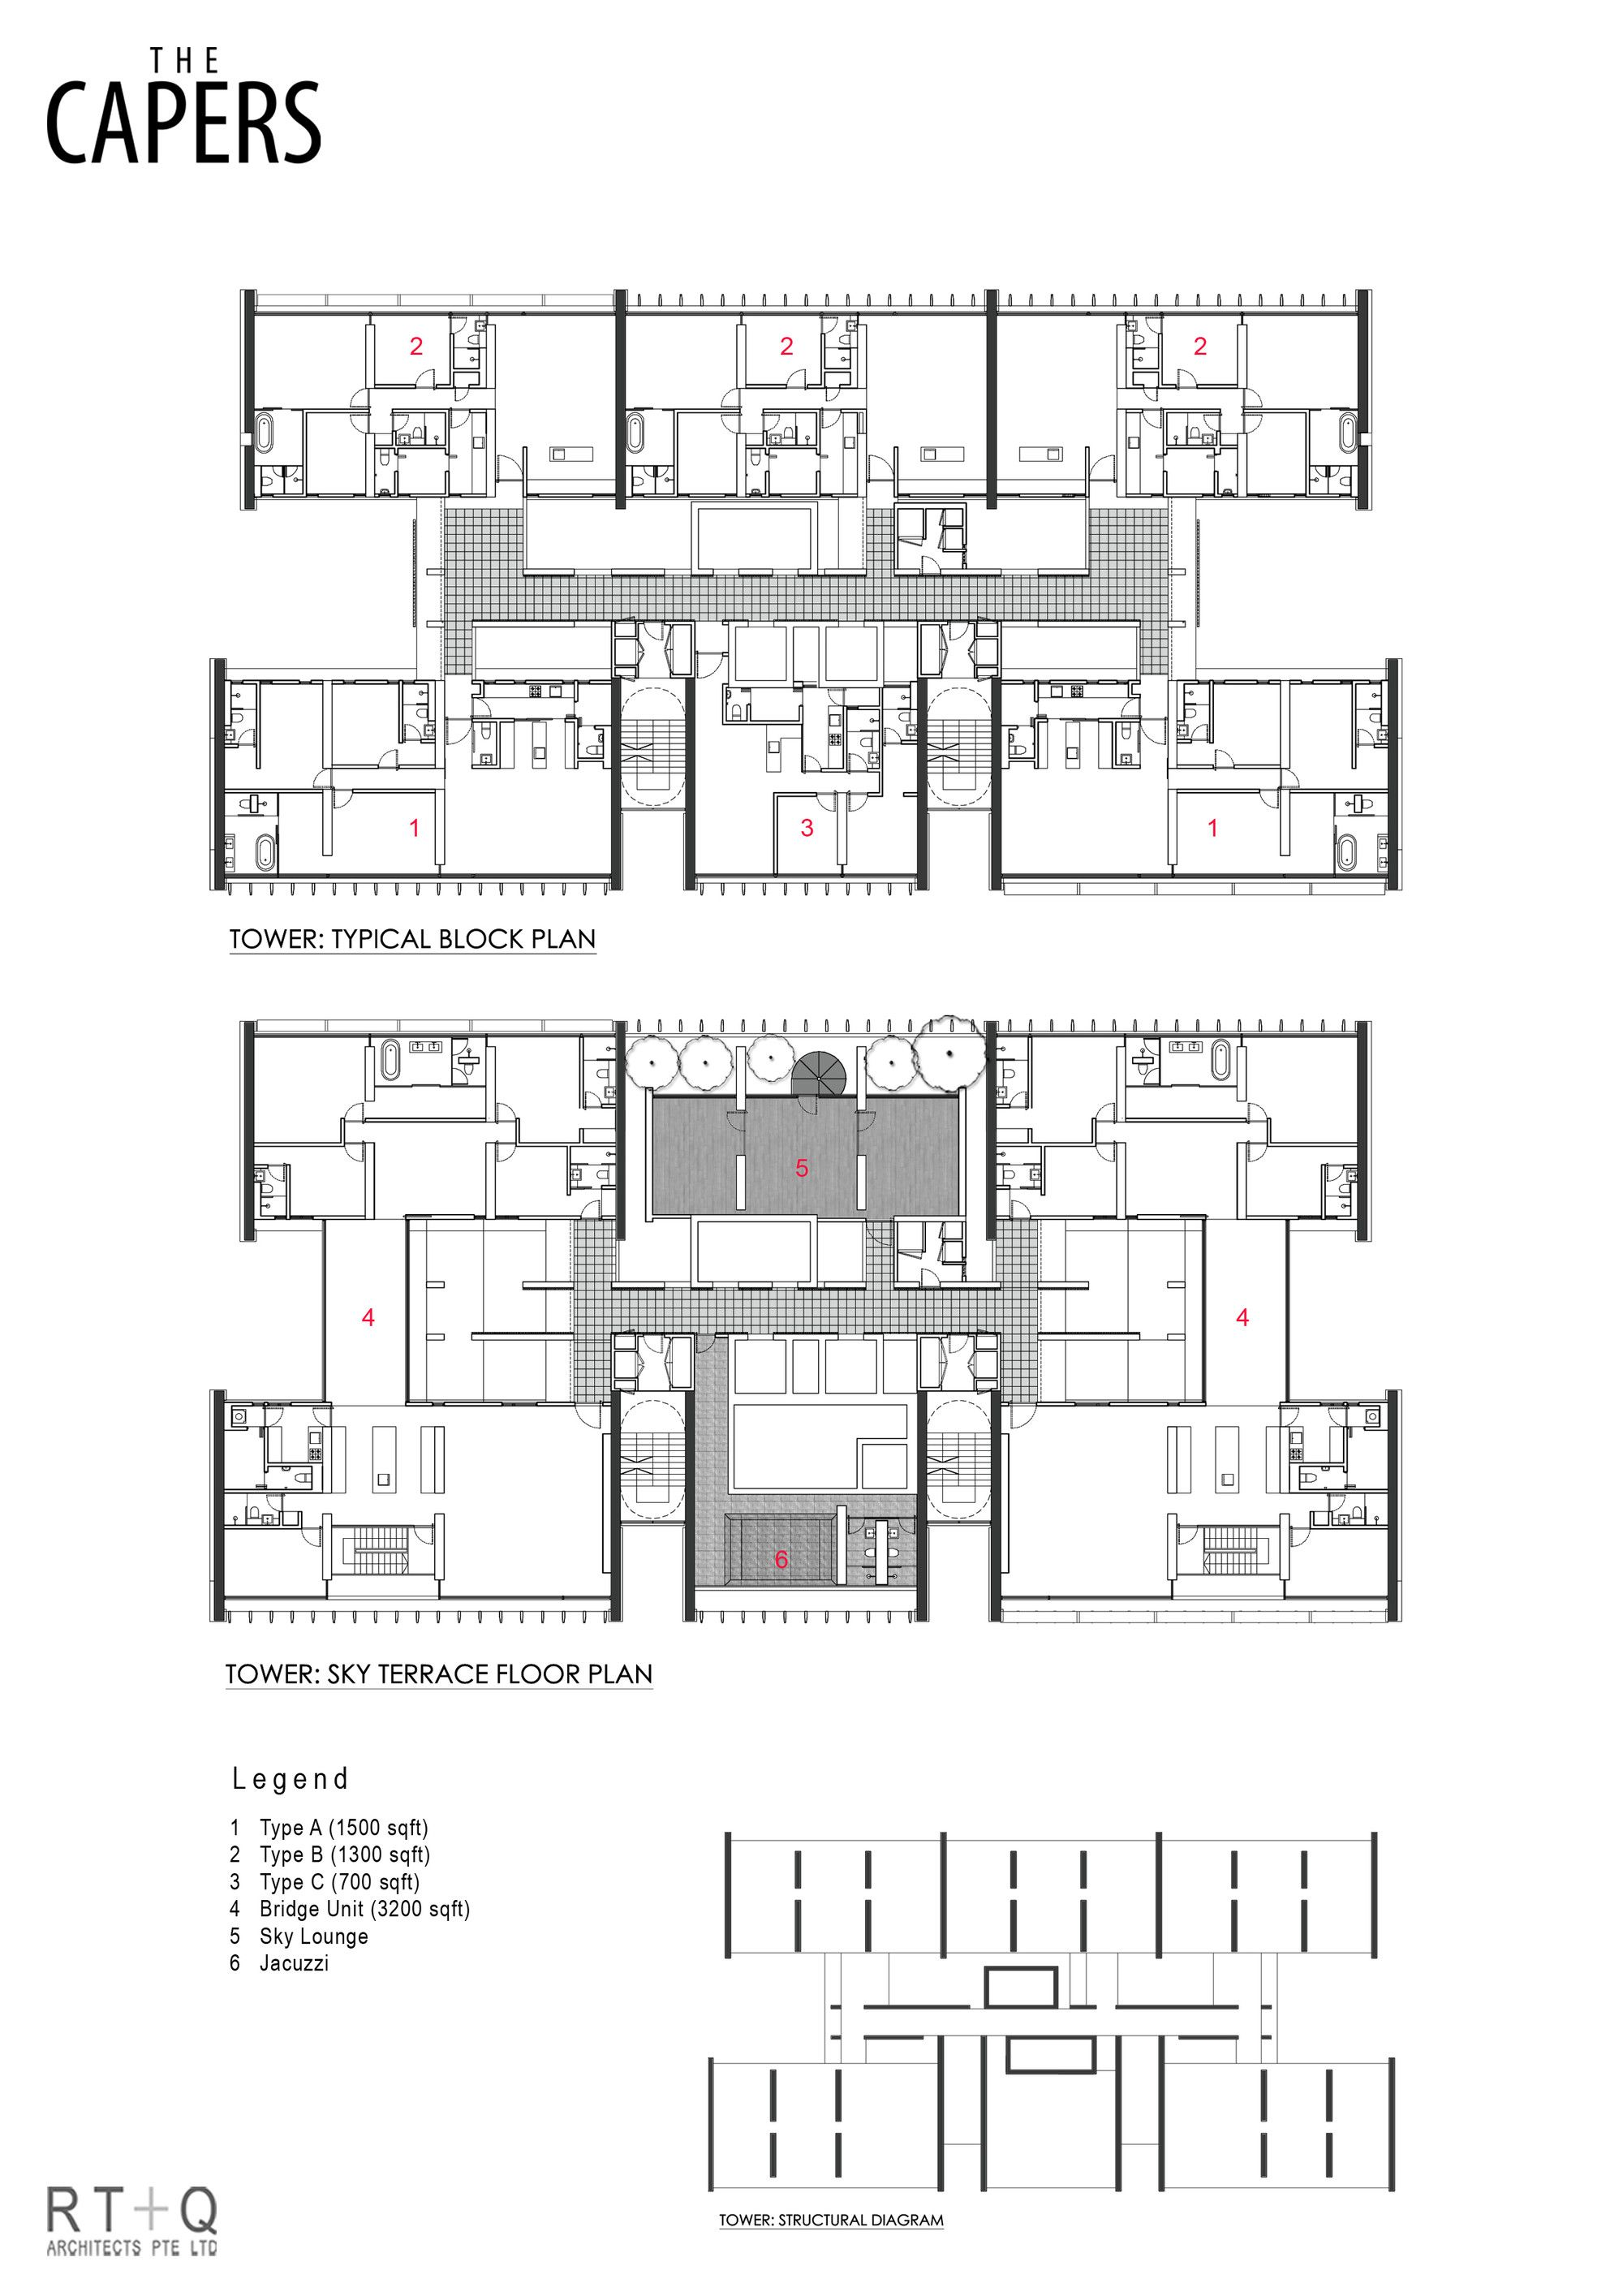 Gallery Of The Capers Rt Q Architects 15 Floor Plans Architect Architectural Floor Plans